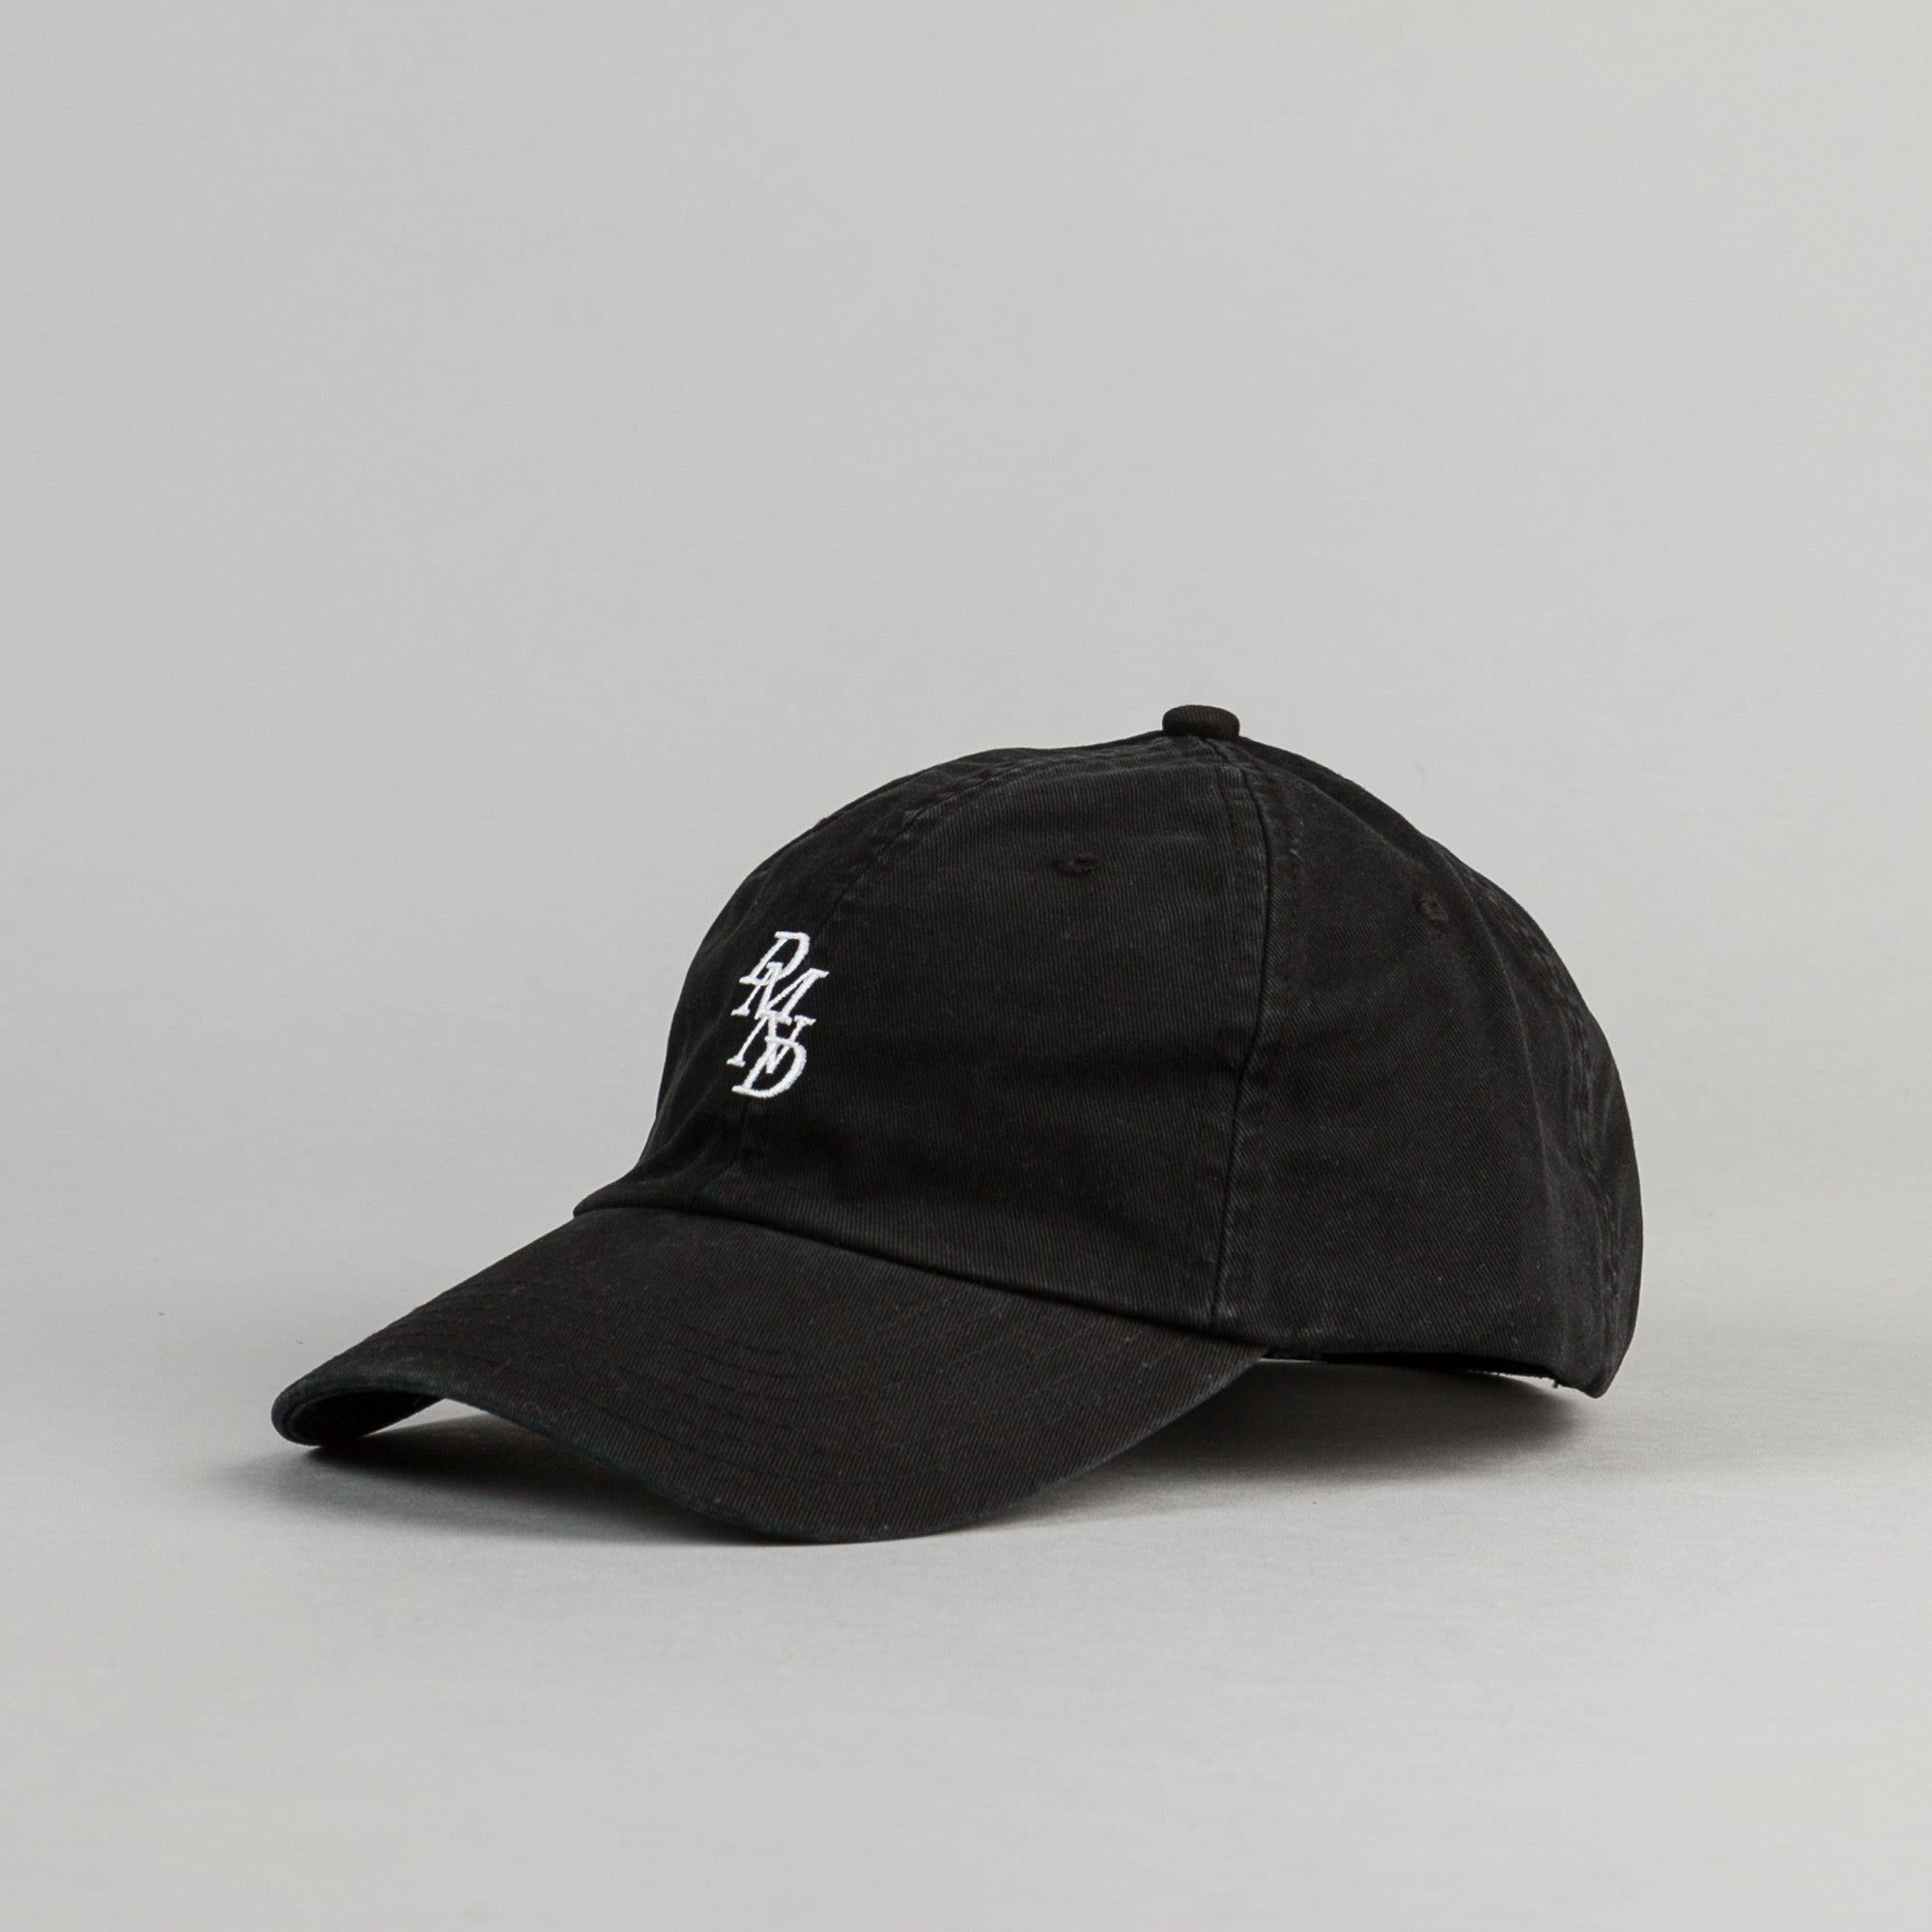 Diamond Serif Sports Cap - Black